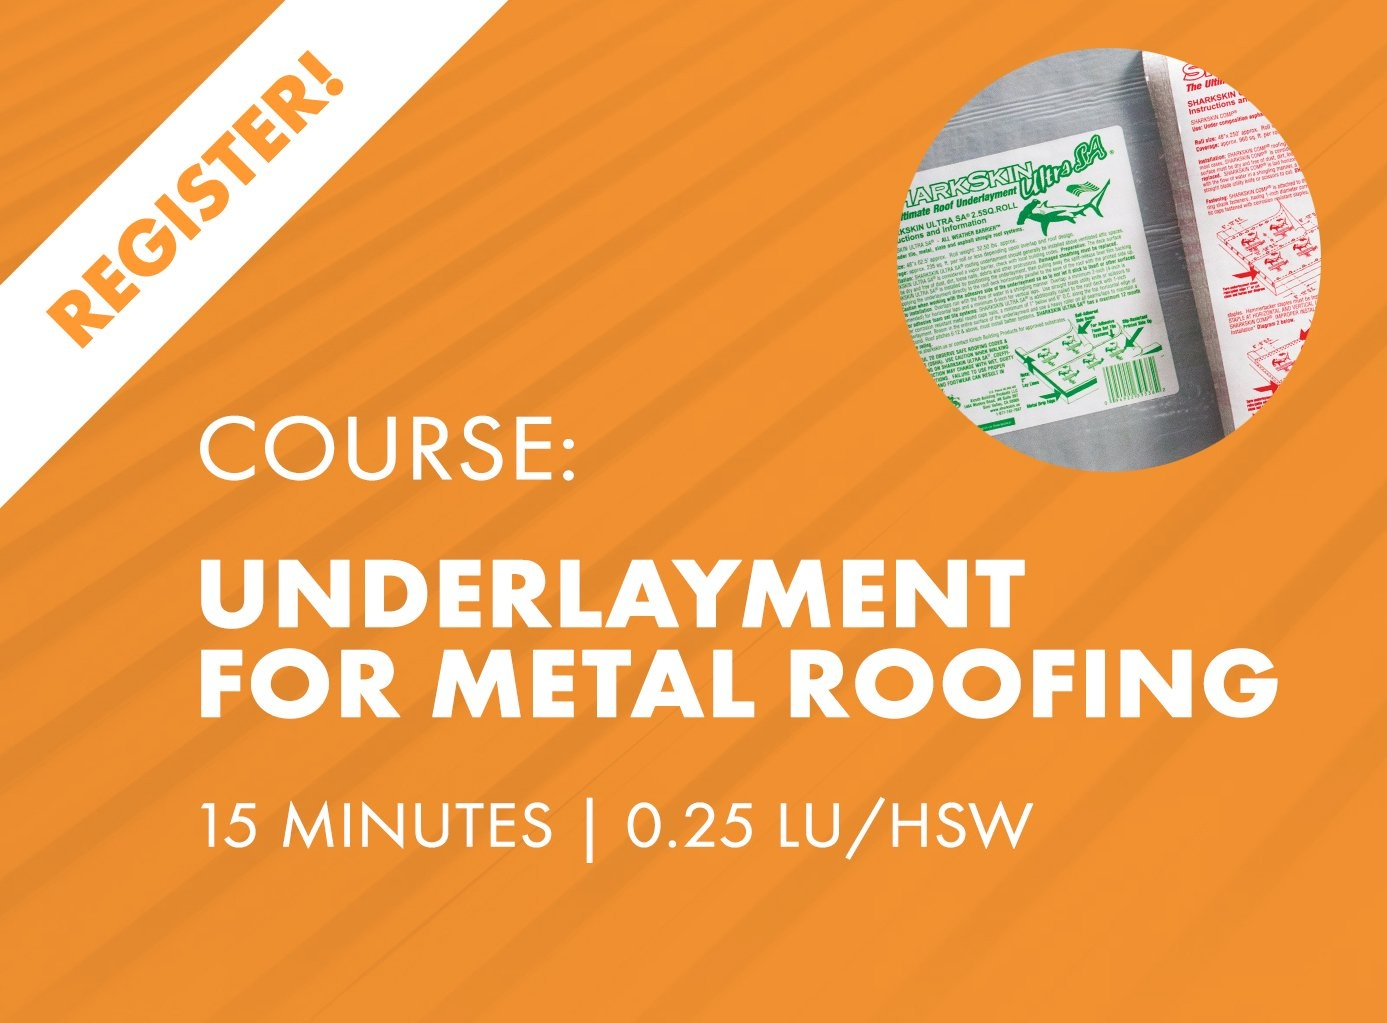 AIA Nano Course - Underlayments of Metal Roofing